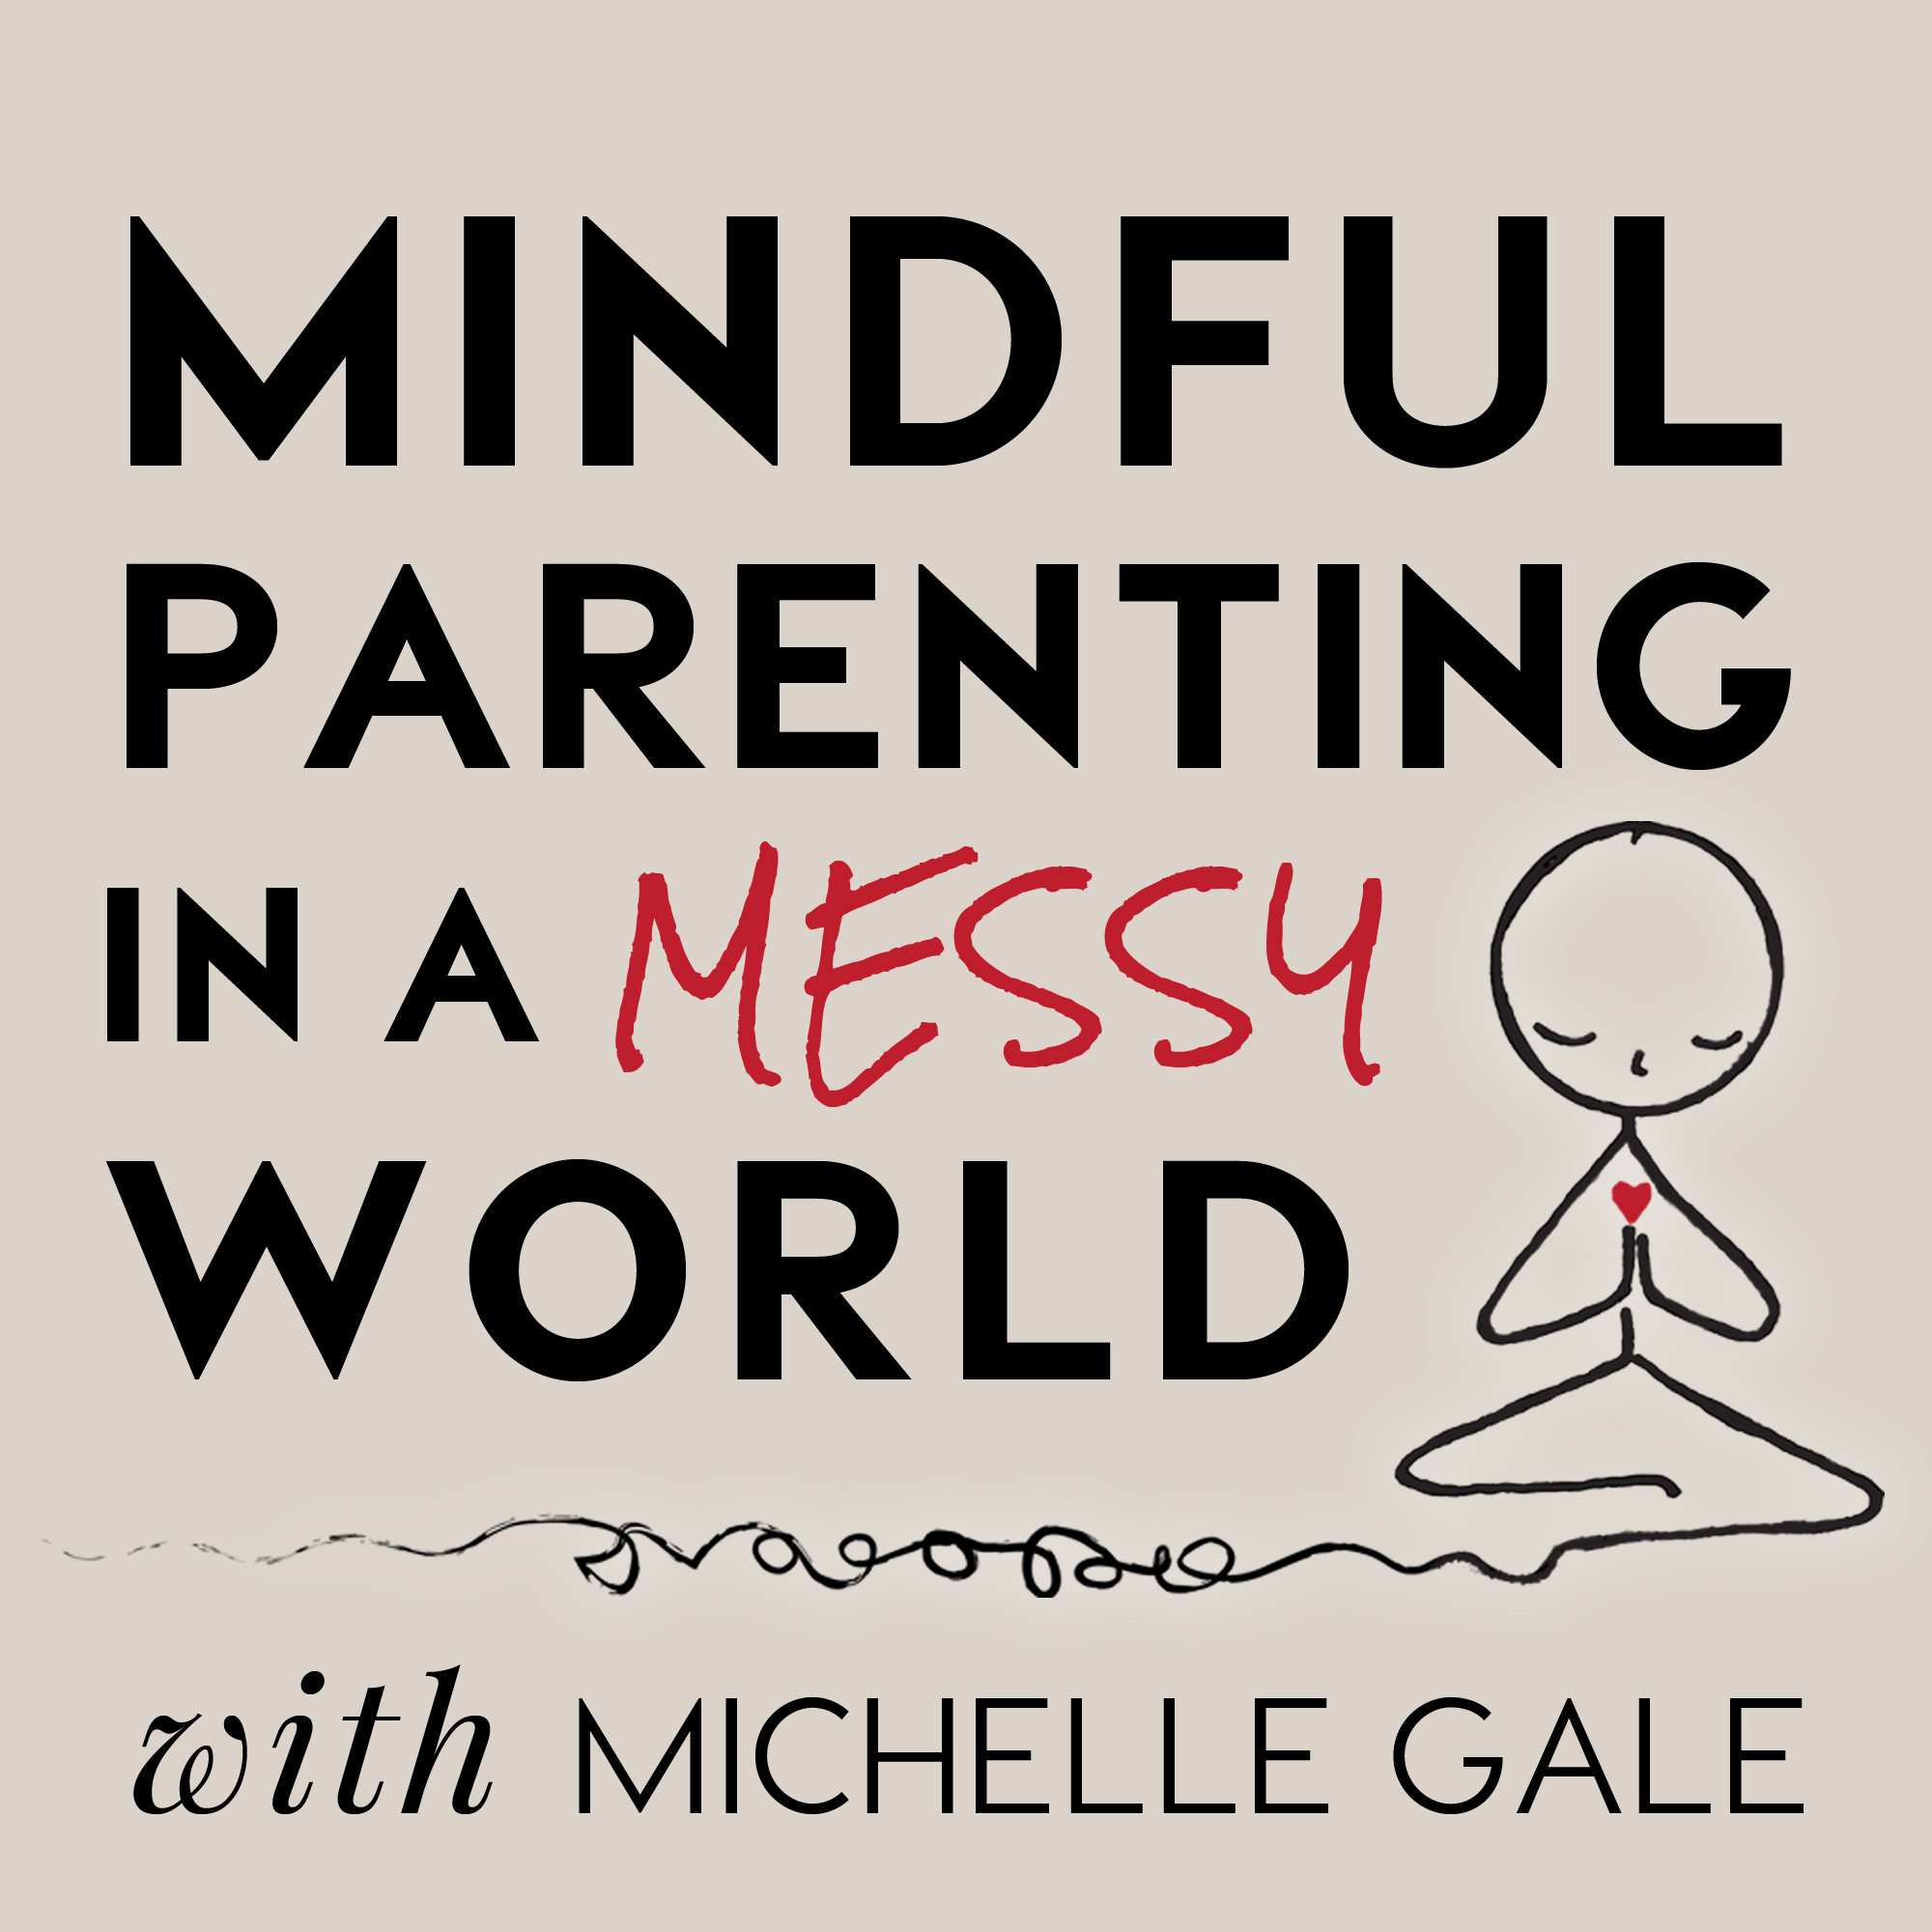 055 Mindfulness & Parenting: Michelle's a guest on the Tilt Parenting Podcast